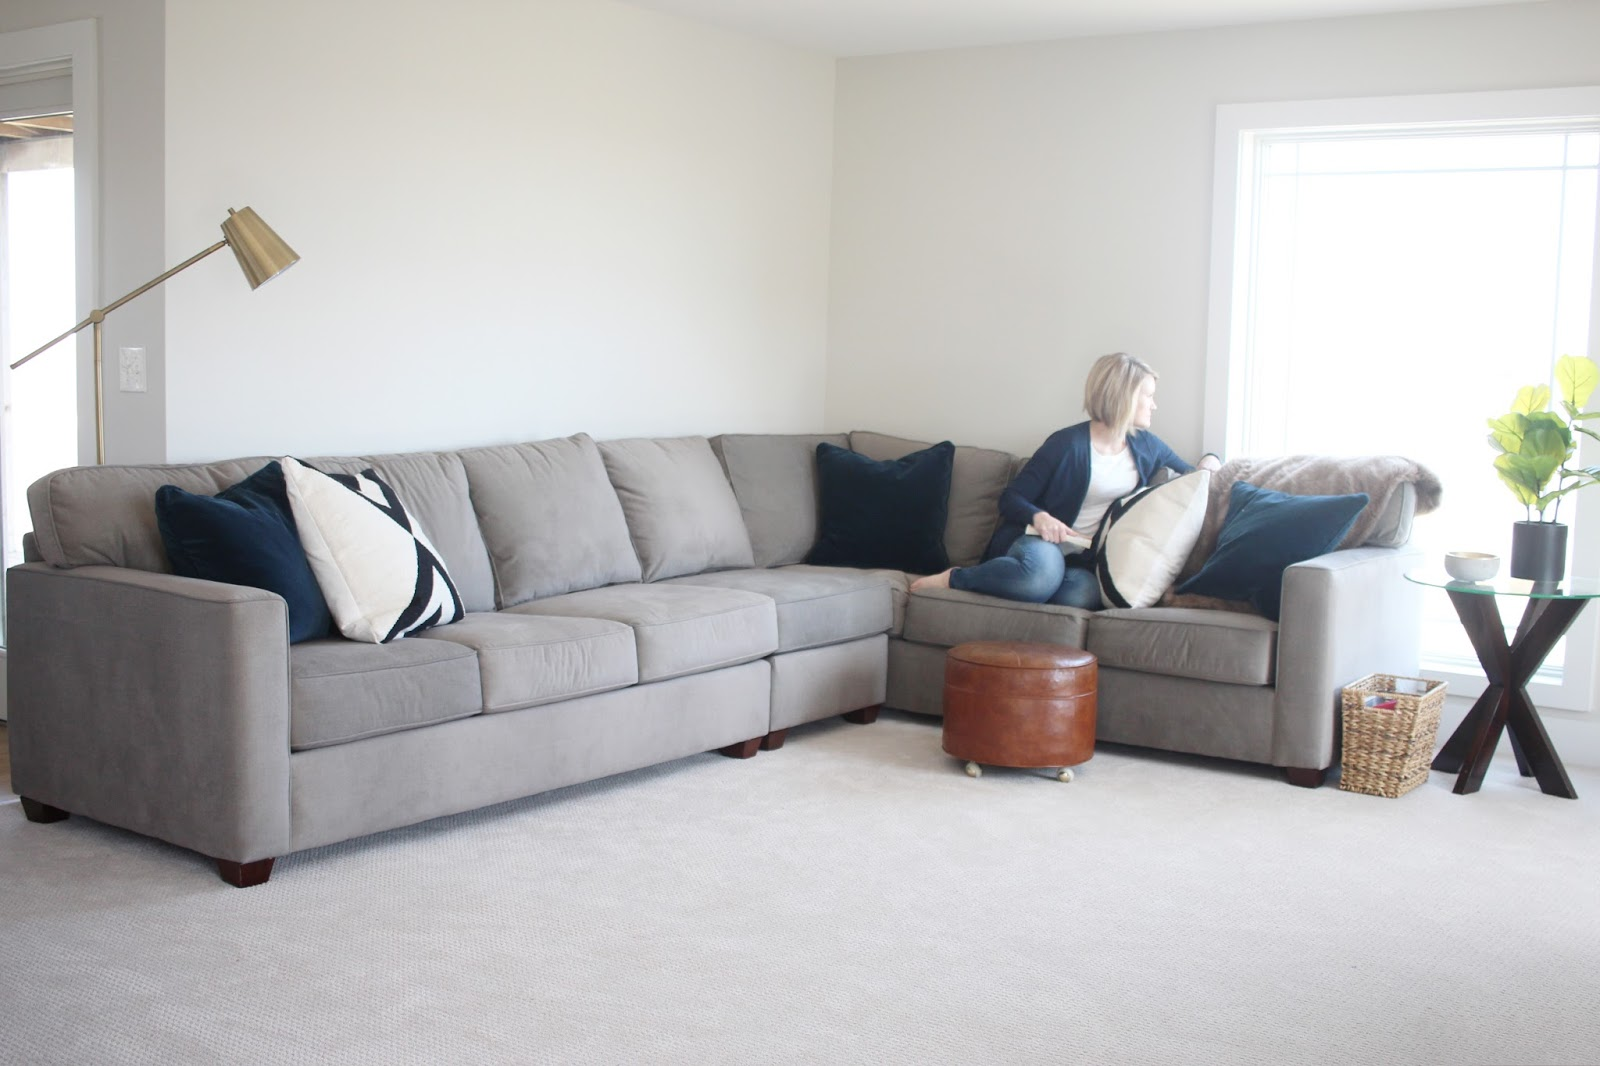 Slumberland Sofa Beds Uk Nothing But Neutral All About Our New Sectional